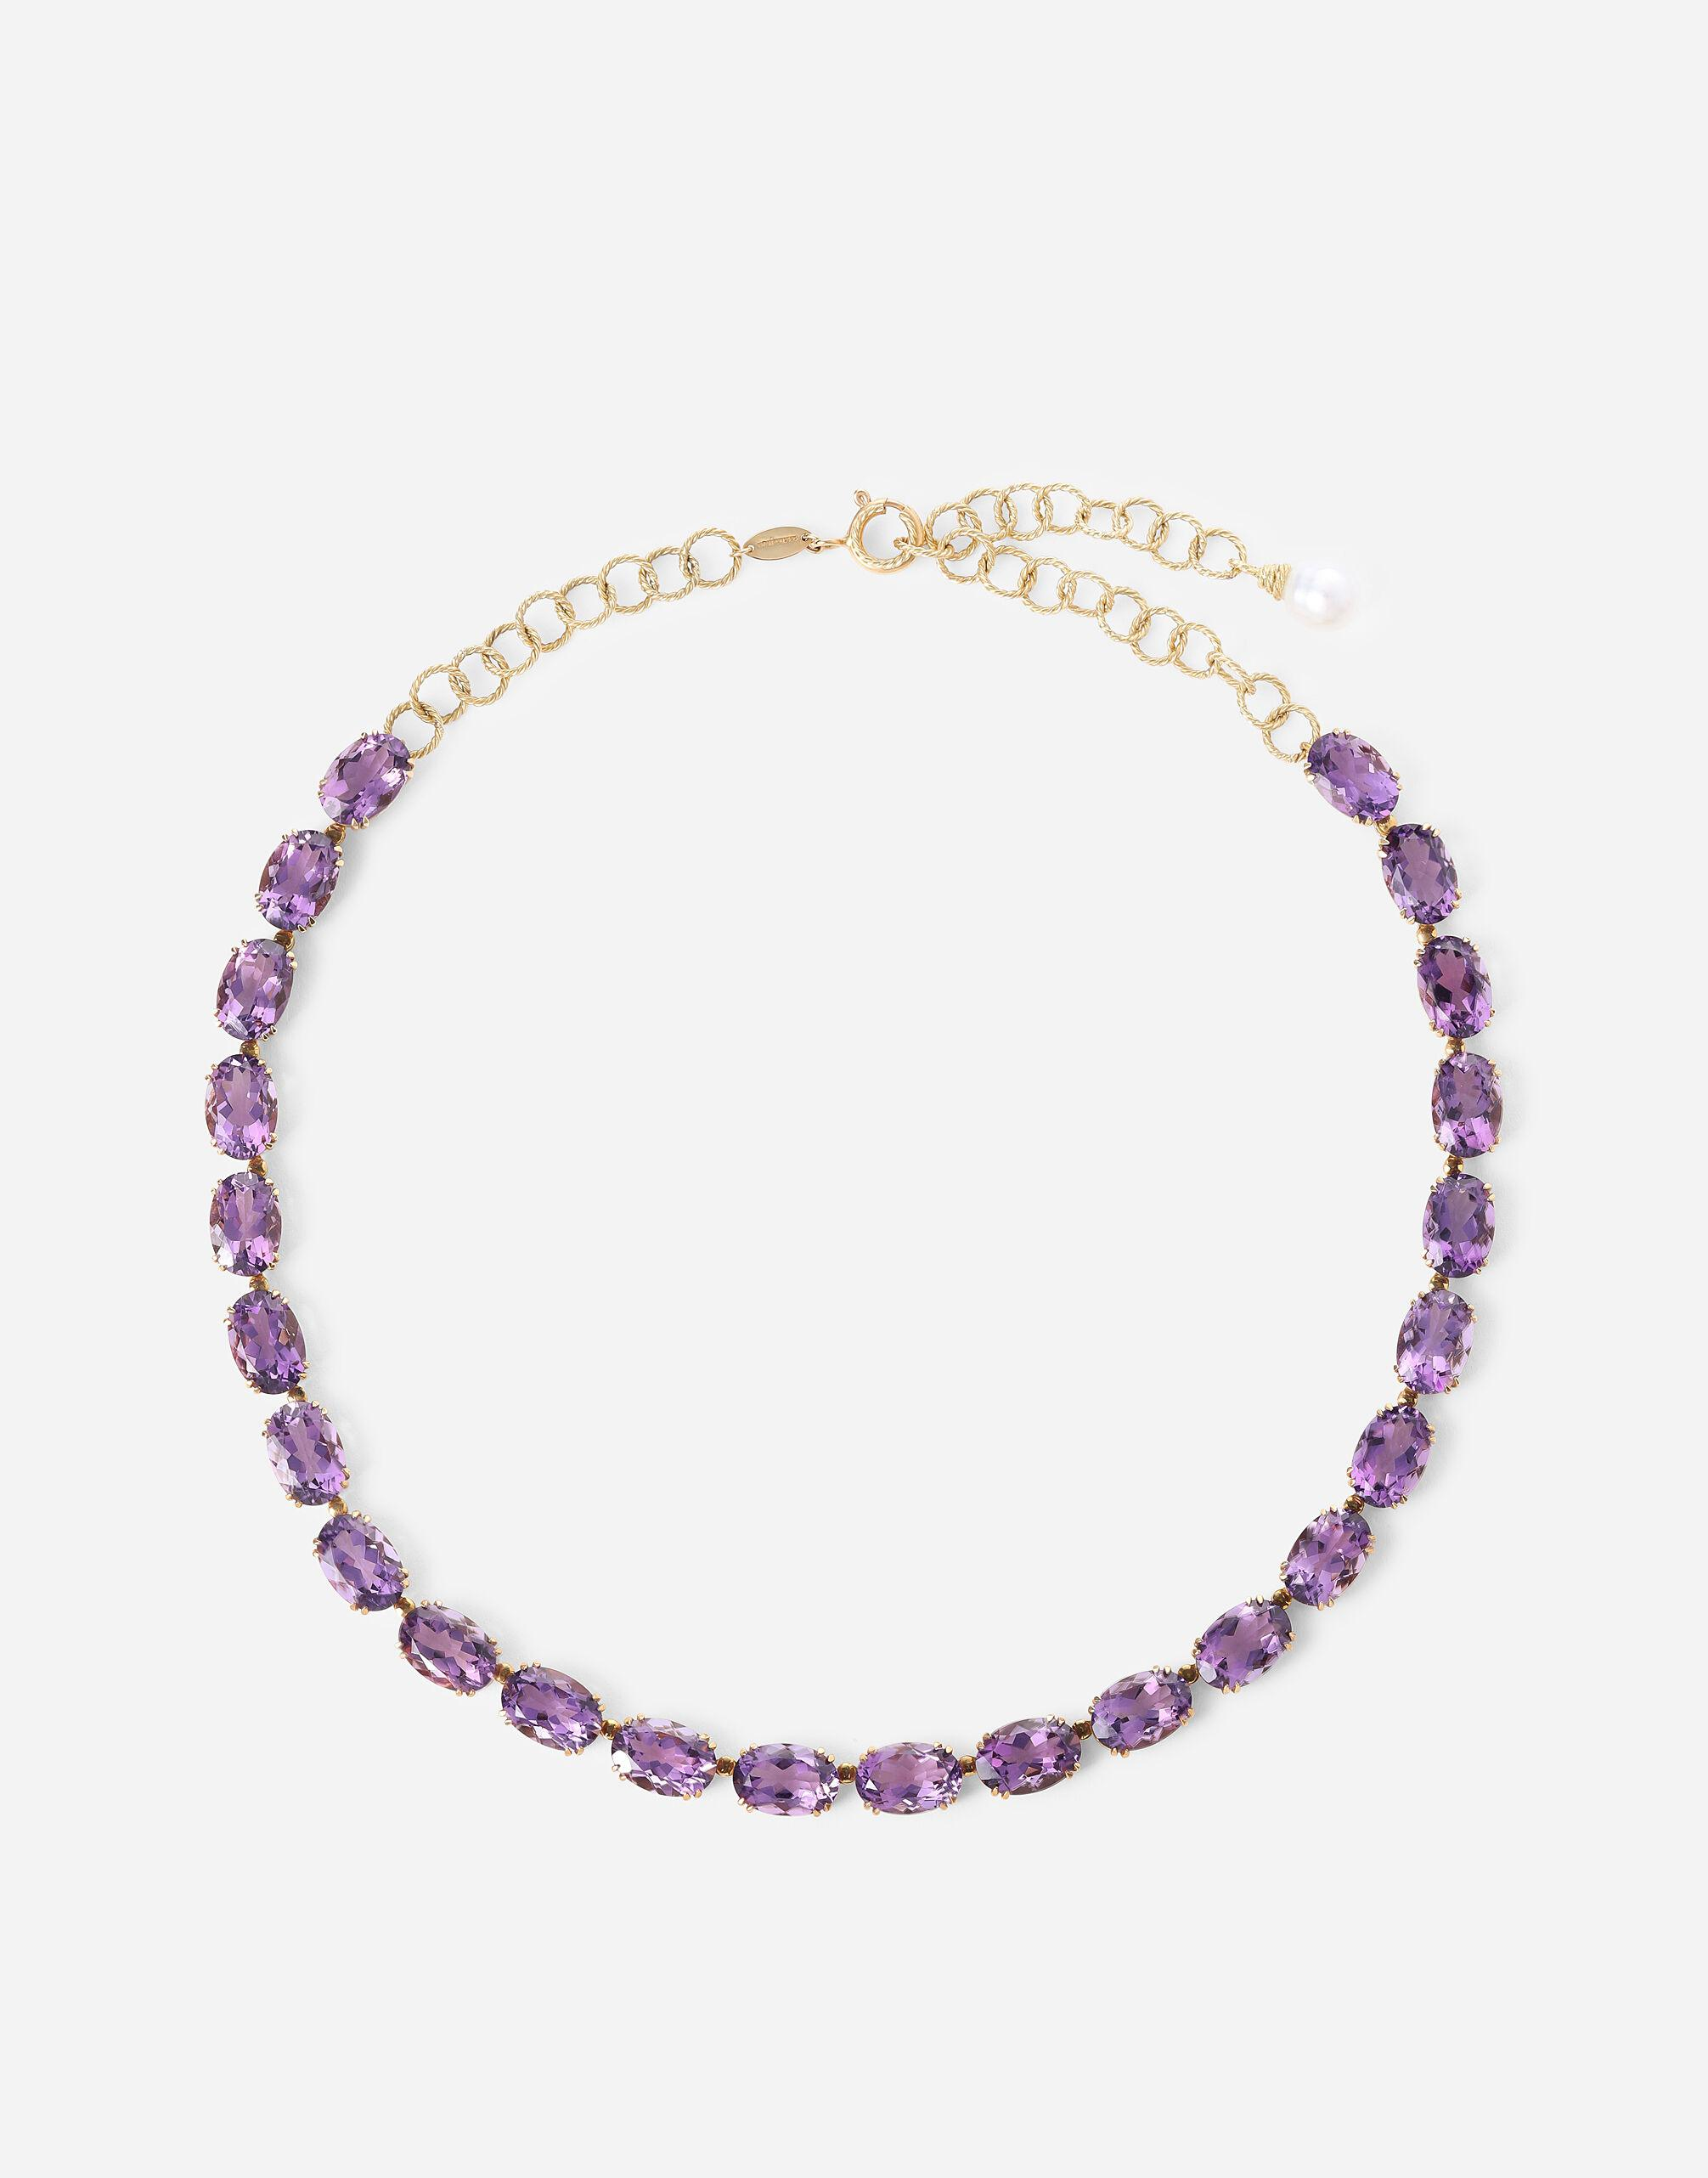 Anna necklace in yellow 18kt gold with amethysts